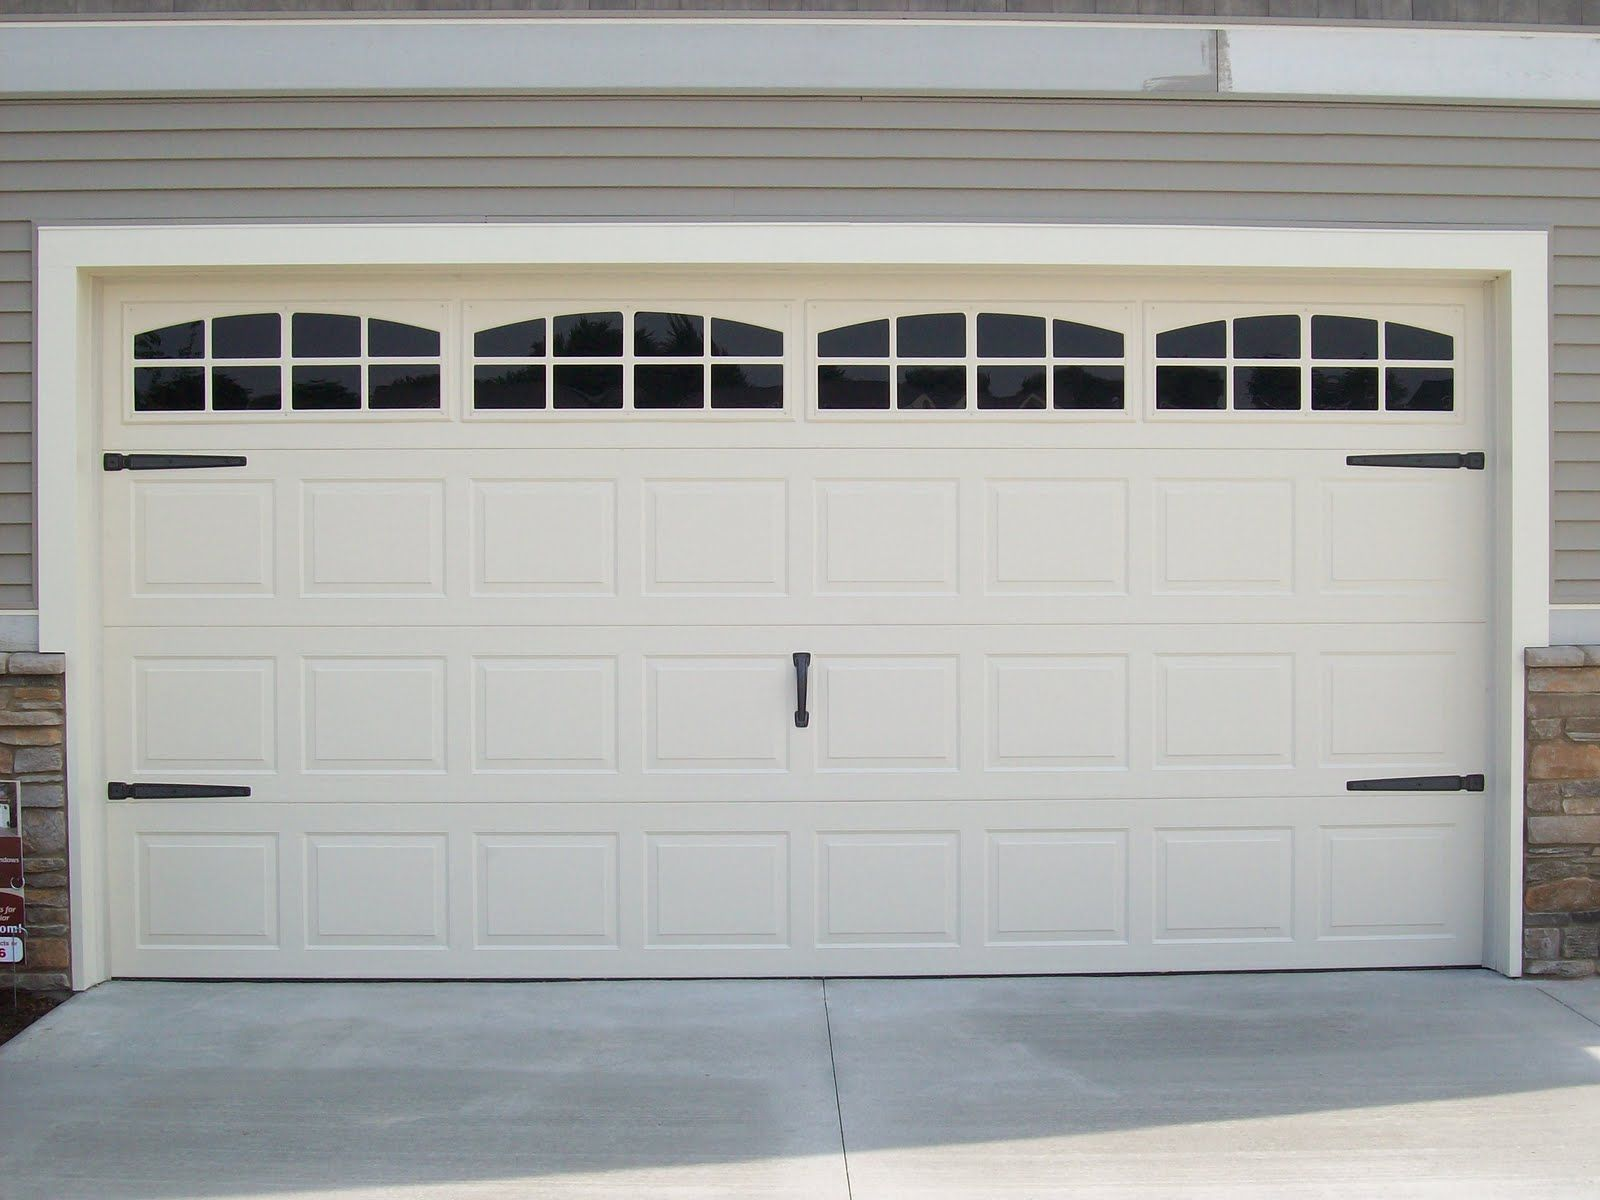 inserts plastic to no decorative windows garaga window doors my add door carriage garage